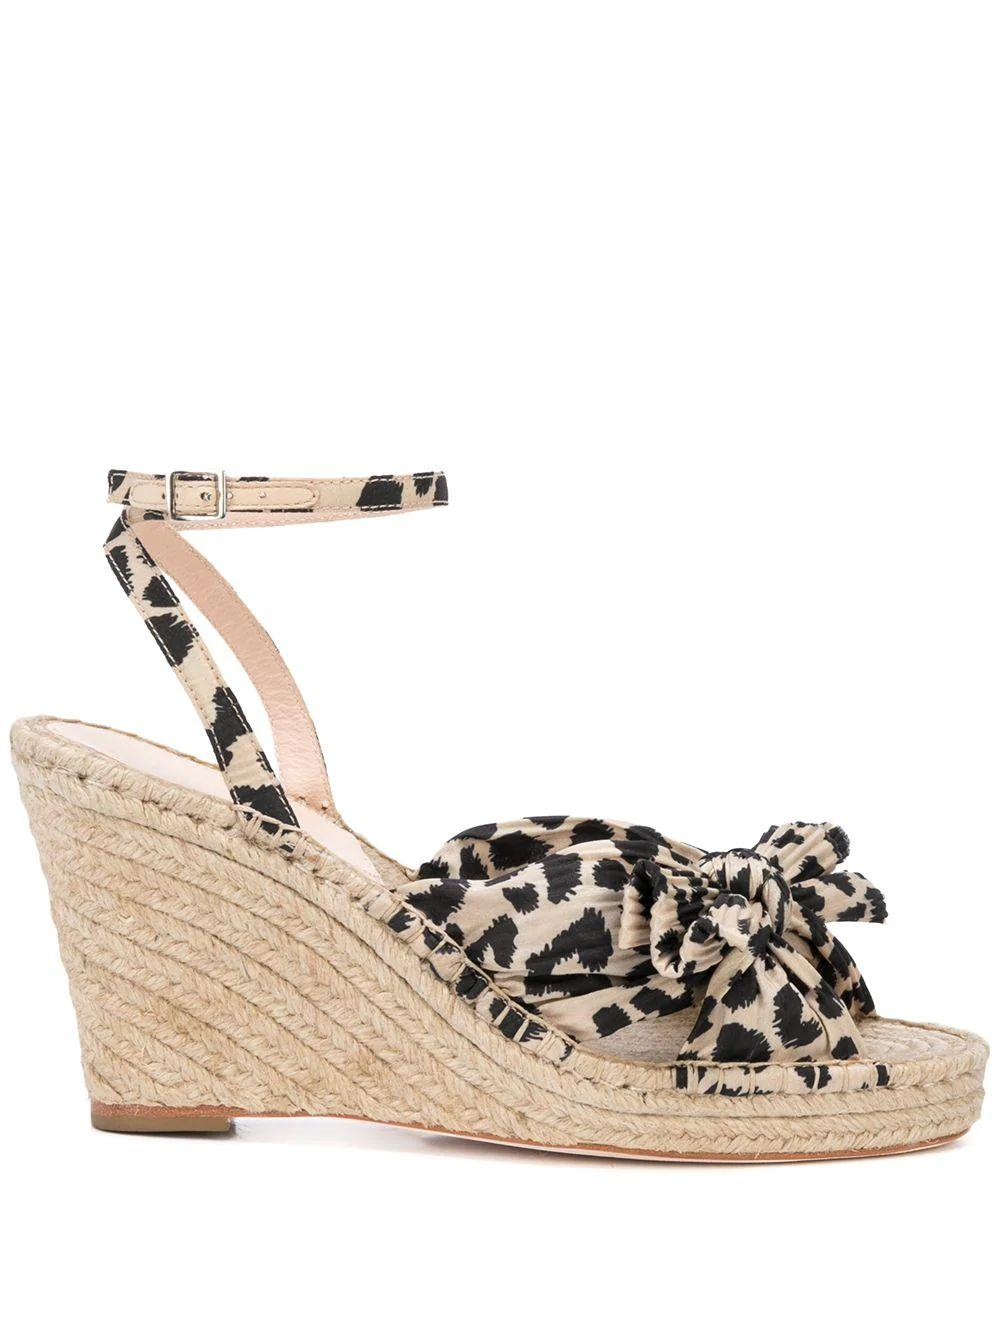 Pleated Knot Espadrille Wedge With Ankles